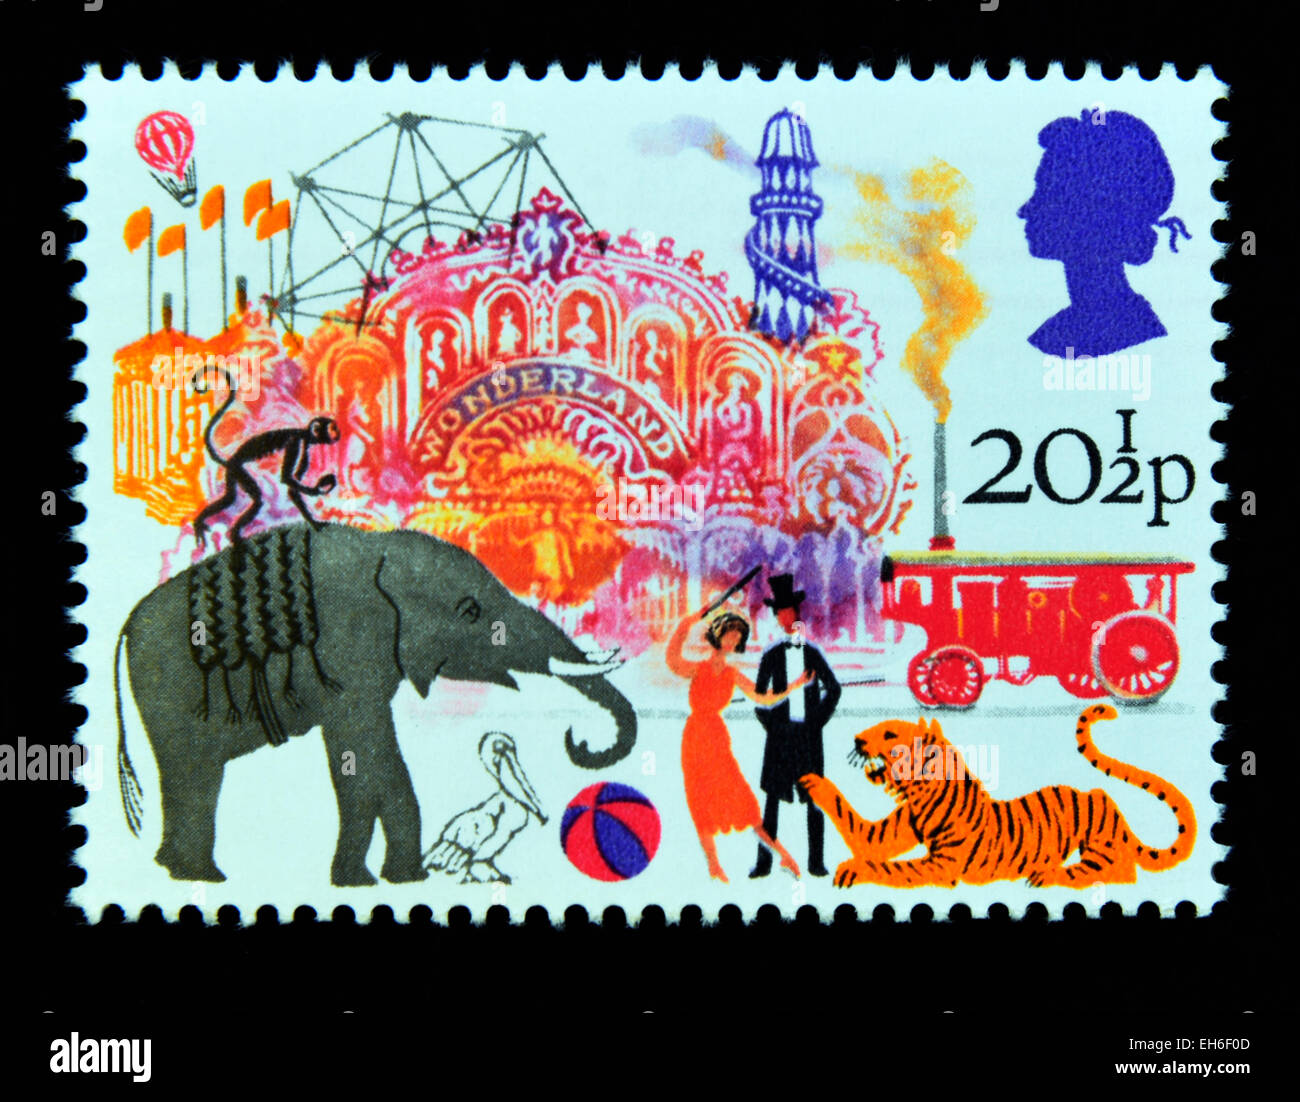 Postage stamp. Great Britain. Queen Elizabeth II. 1983. British Fairs. Big Wheel, Helter-skelter and Performing - Stock Image